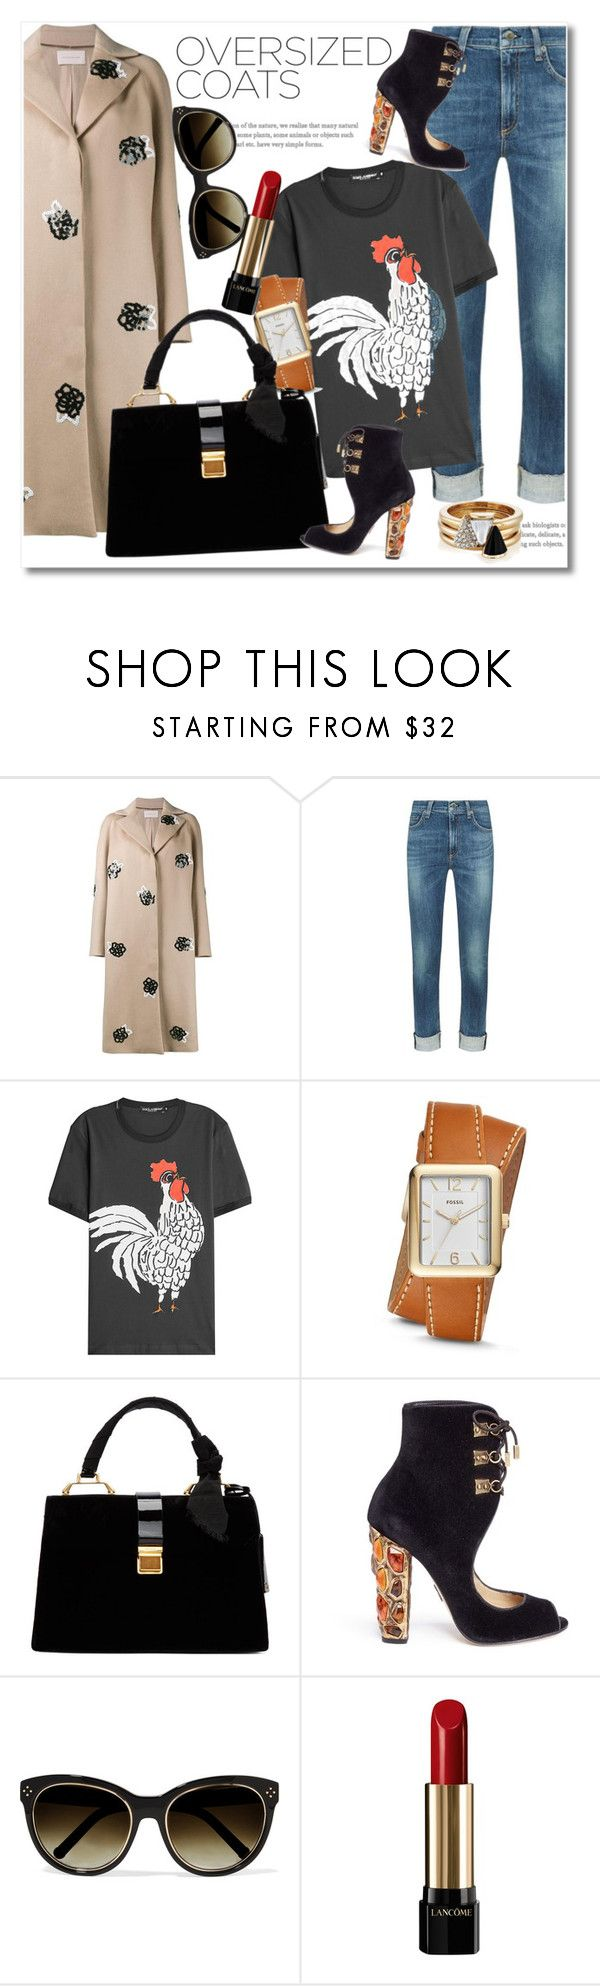 """Oversized Coats Beige"" by vkmd ❤ liked on Polyvore featuring Christopher Kane, rag & bone, Dolce&Gabbana, FOSSIL, Miu Miu, Paul Andrew, Chloé, Lancôme, Brixton and oversizedcoats"